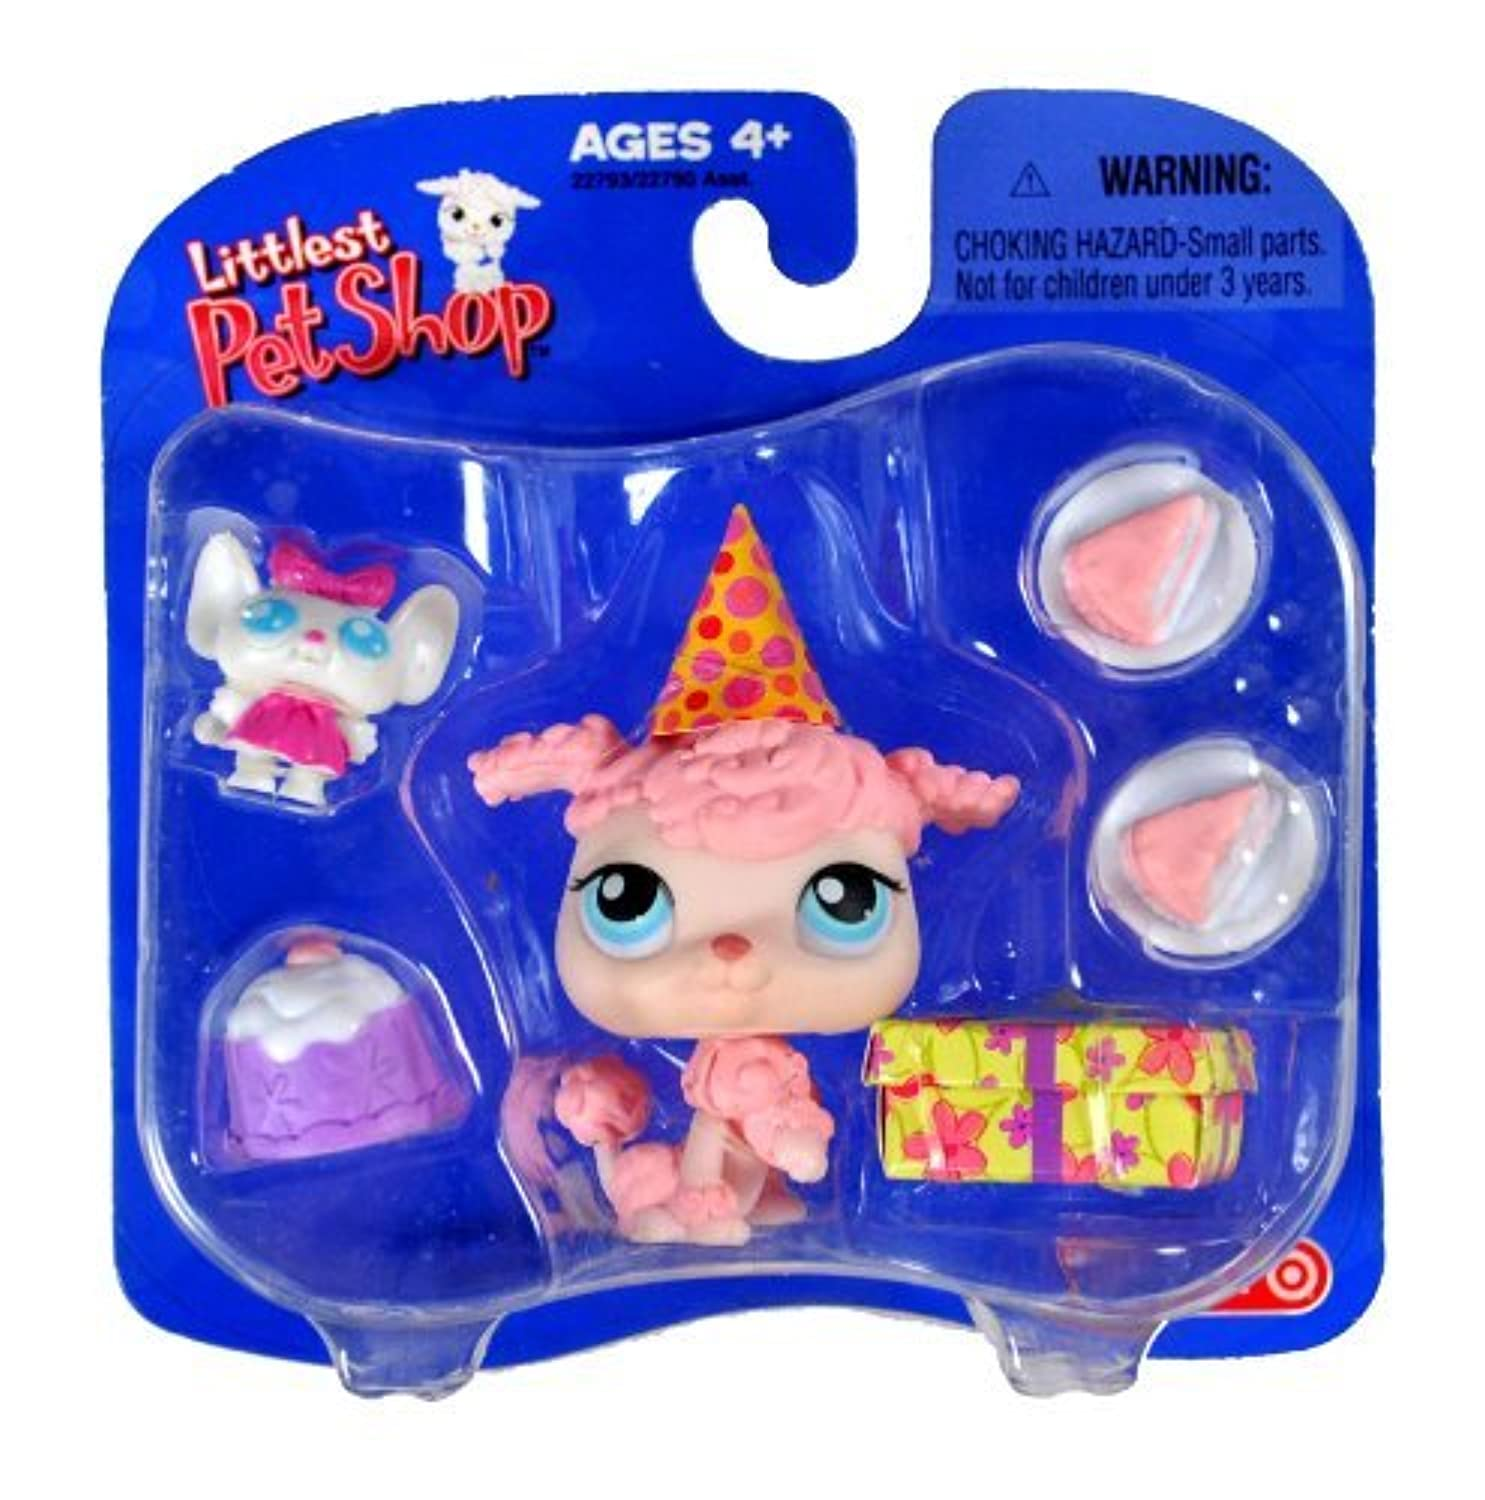 Hasbro Year 2005 Littlest Pet Shop Exclusive Single Pack Series Bobble Head Pet Figure Set - Birthday Pink POODLE with B'Day Hat,